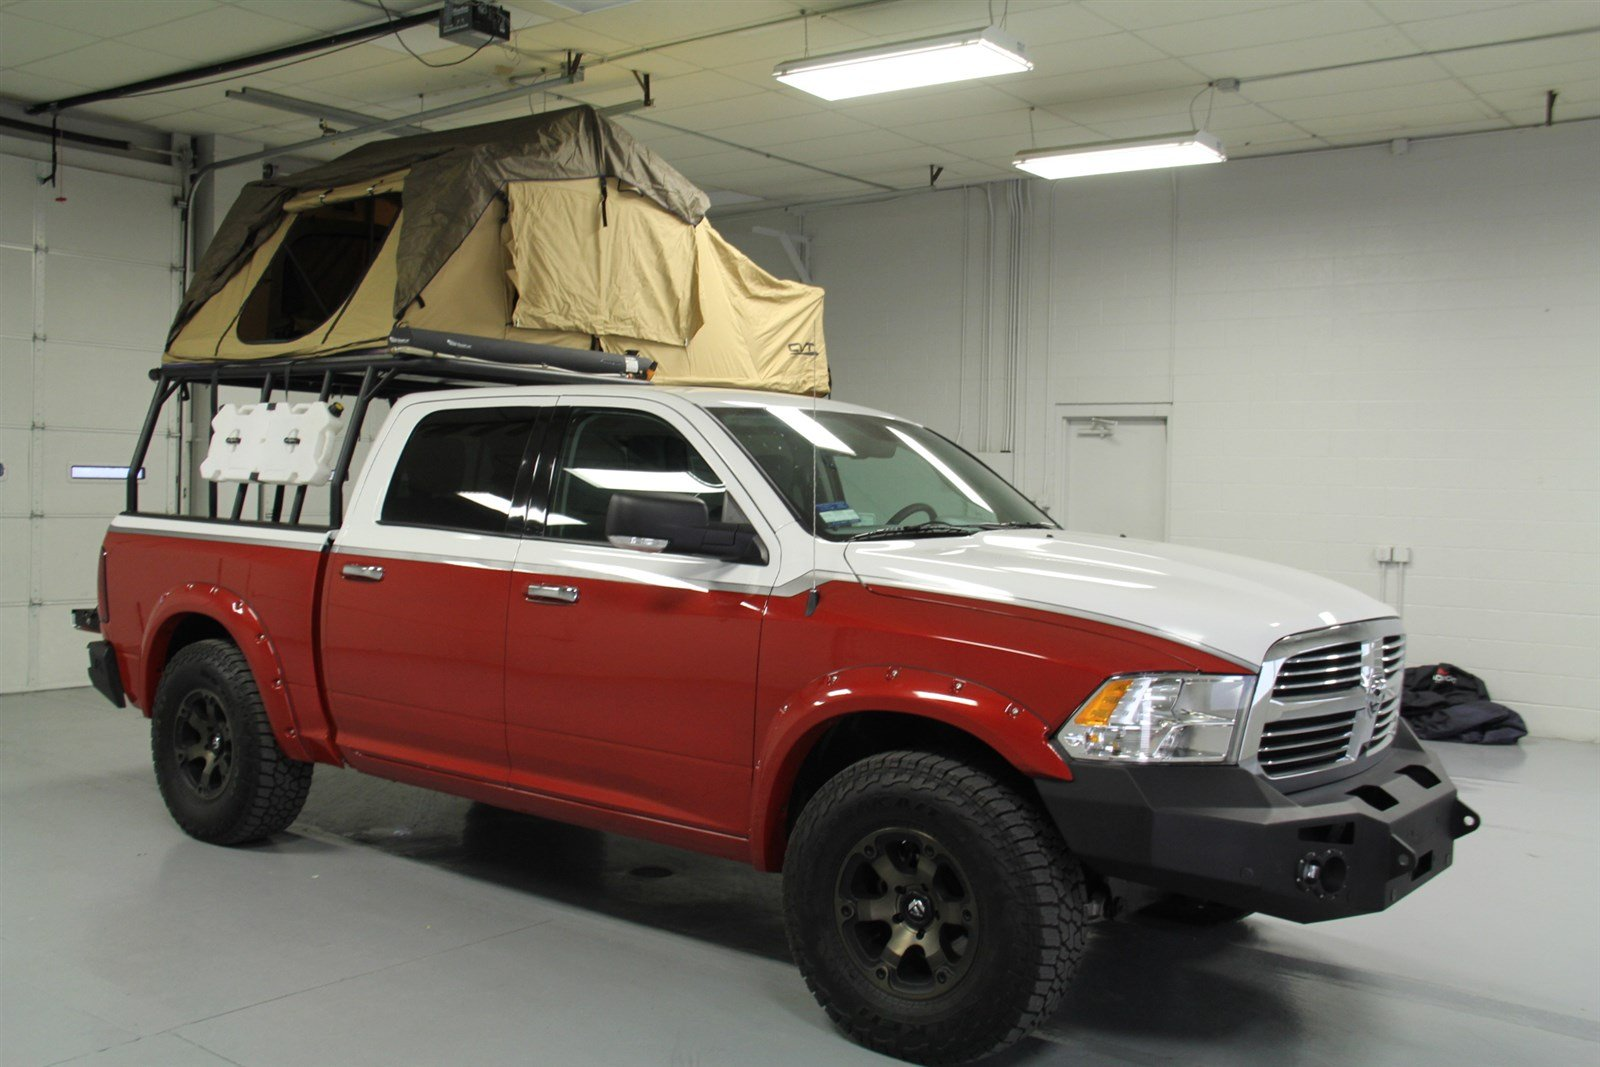 pre owned 2015 dodge ram 1500 crew cab big horn 4x4 popular mechanics special camping edition. Black Bedroom Furniture Sets. Home Design Ideas